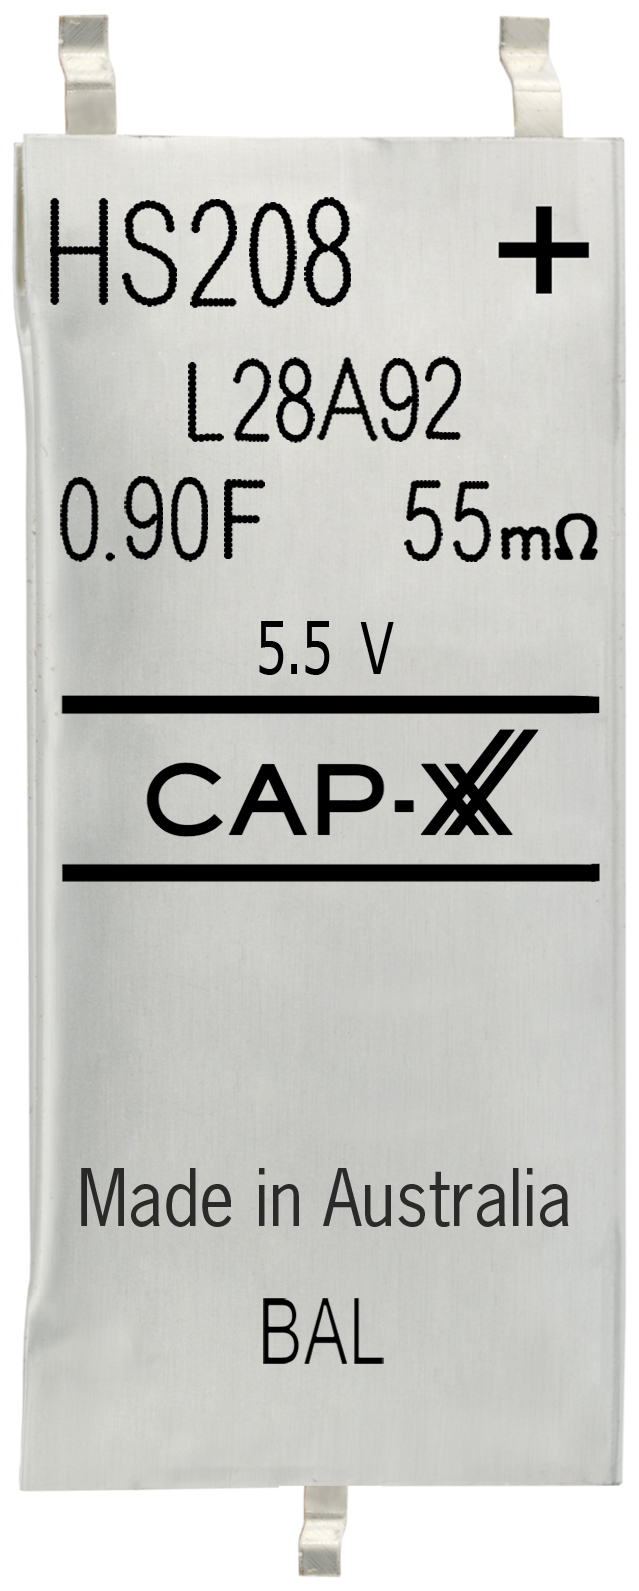 CAP-XX Supercapacitors H-series